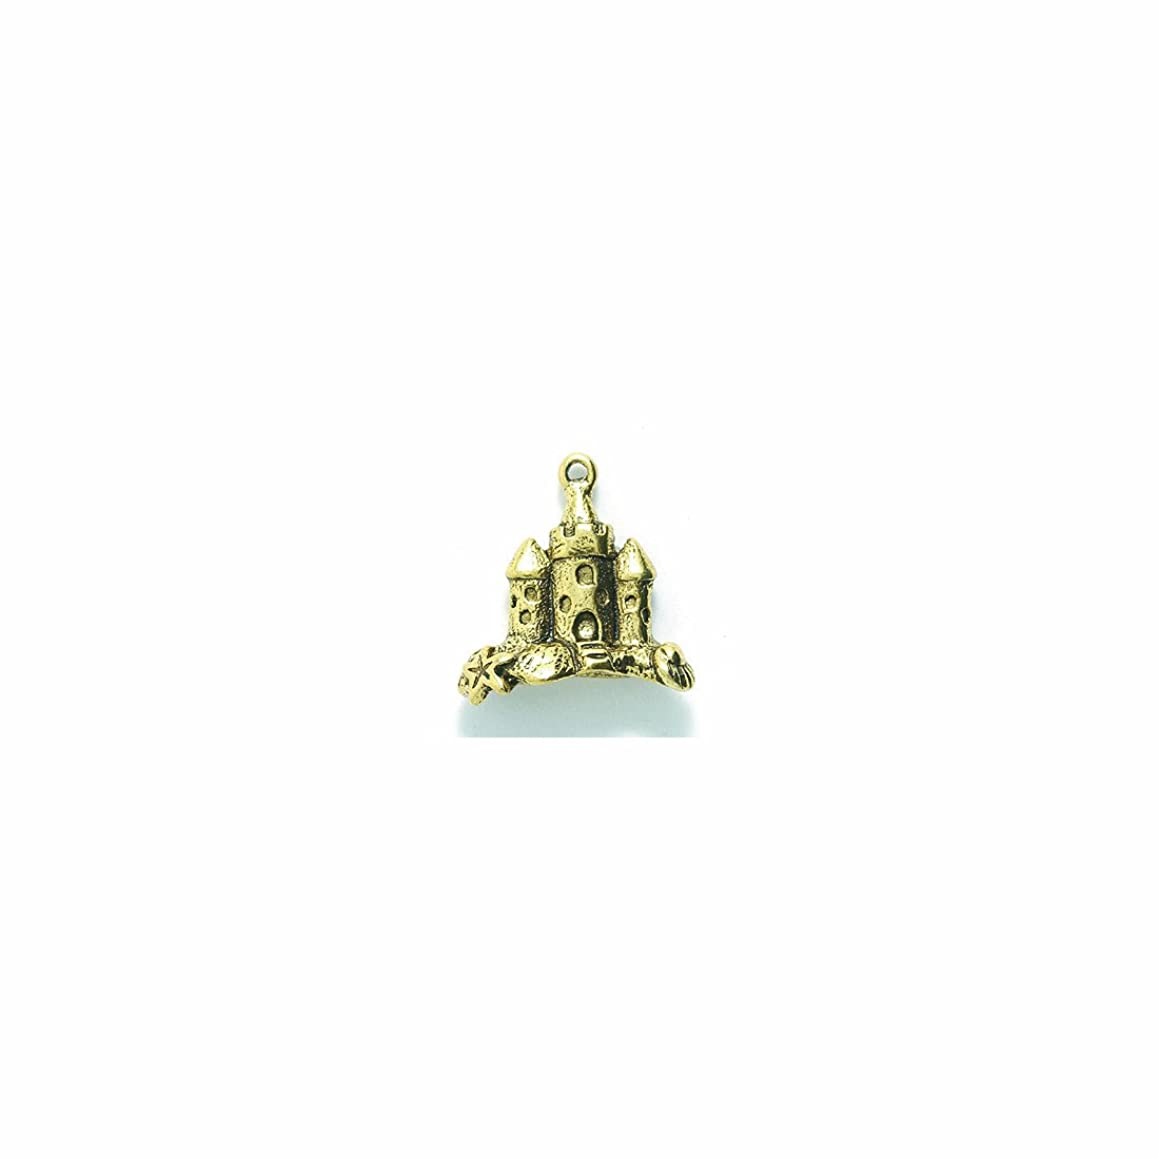 Shipwreck Beads Pewter Sand Castle Charm, Antique Gold, 20 by 20mm, 2-Piece